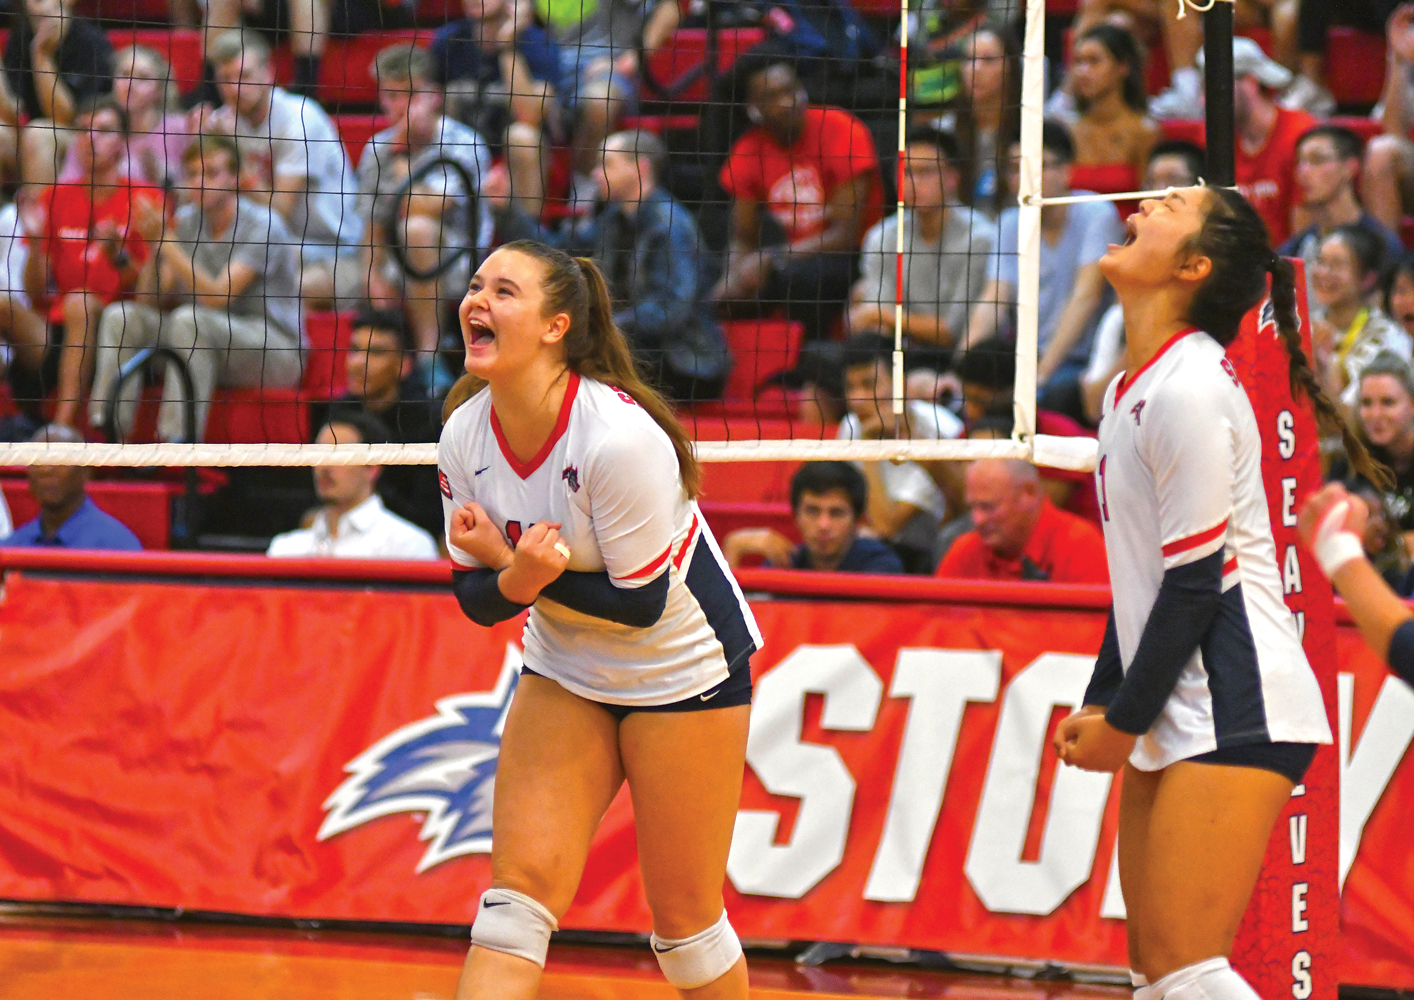 Women's Volleyball Home Opener: 2019–2020 marks the 20th anniversary of SBU's move to Division I. Pritchard Gym, Jim Harrison